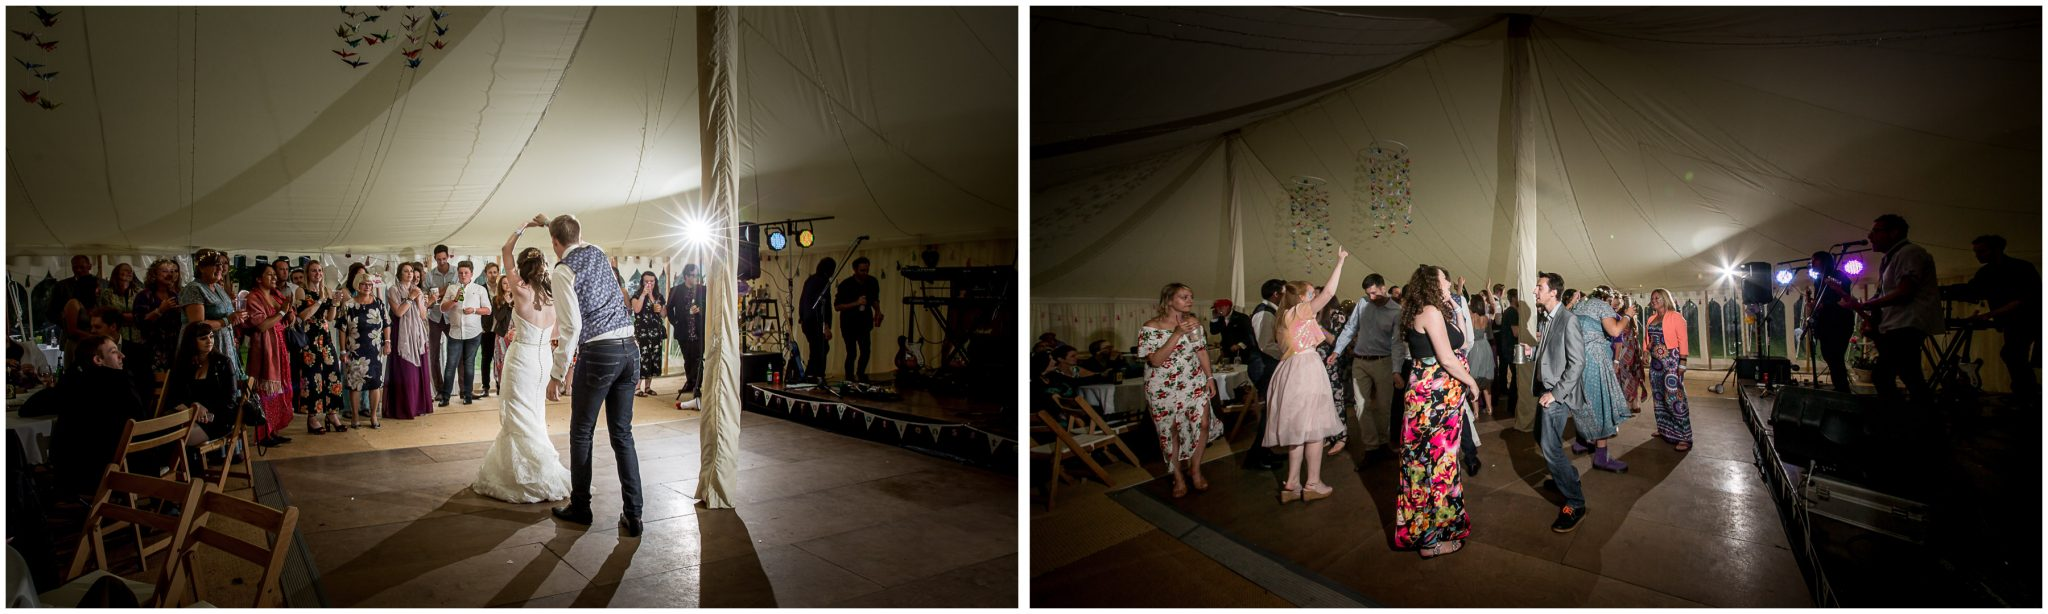 Timsbury Manor Festival Wedding dancefloor action